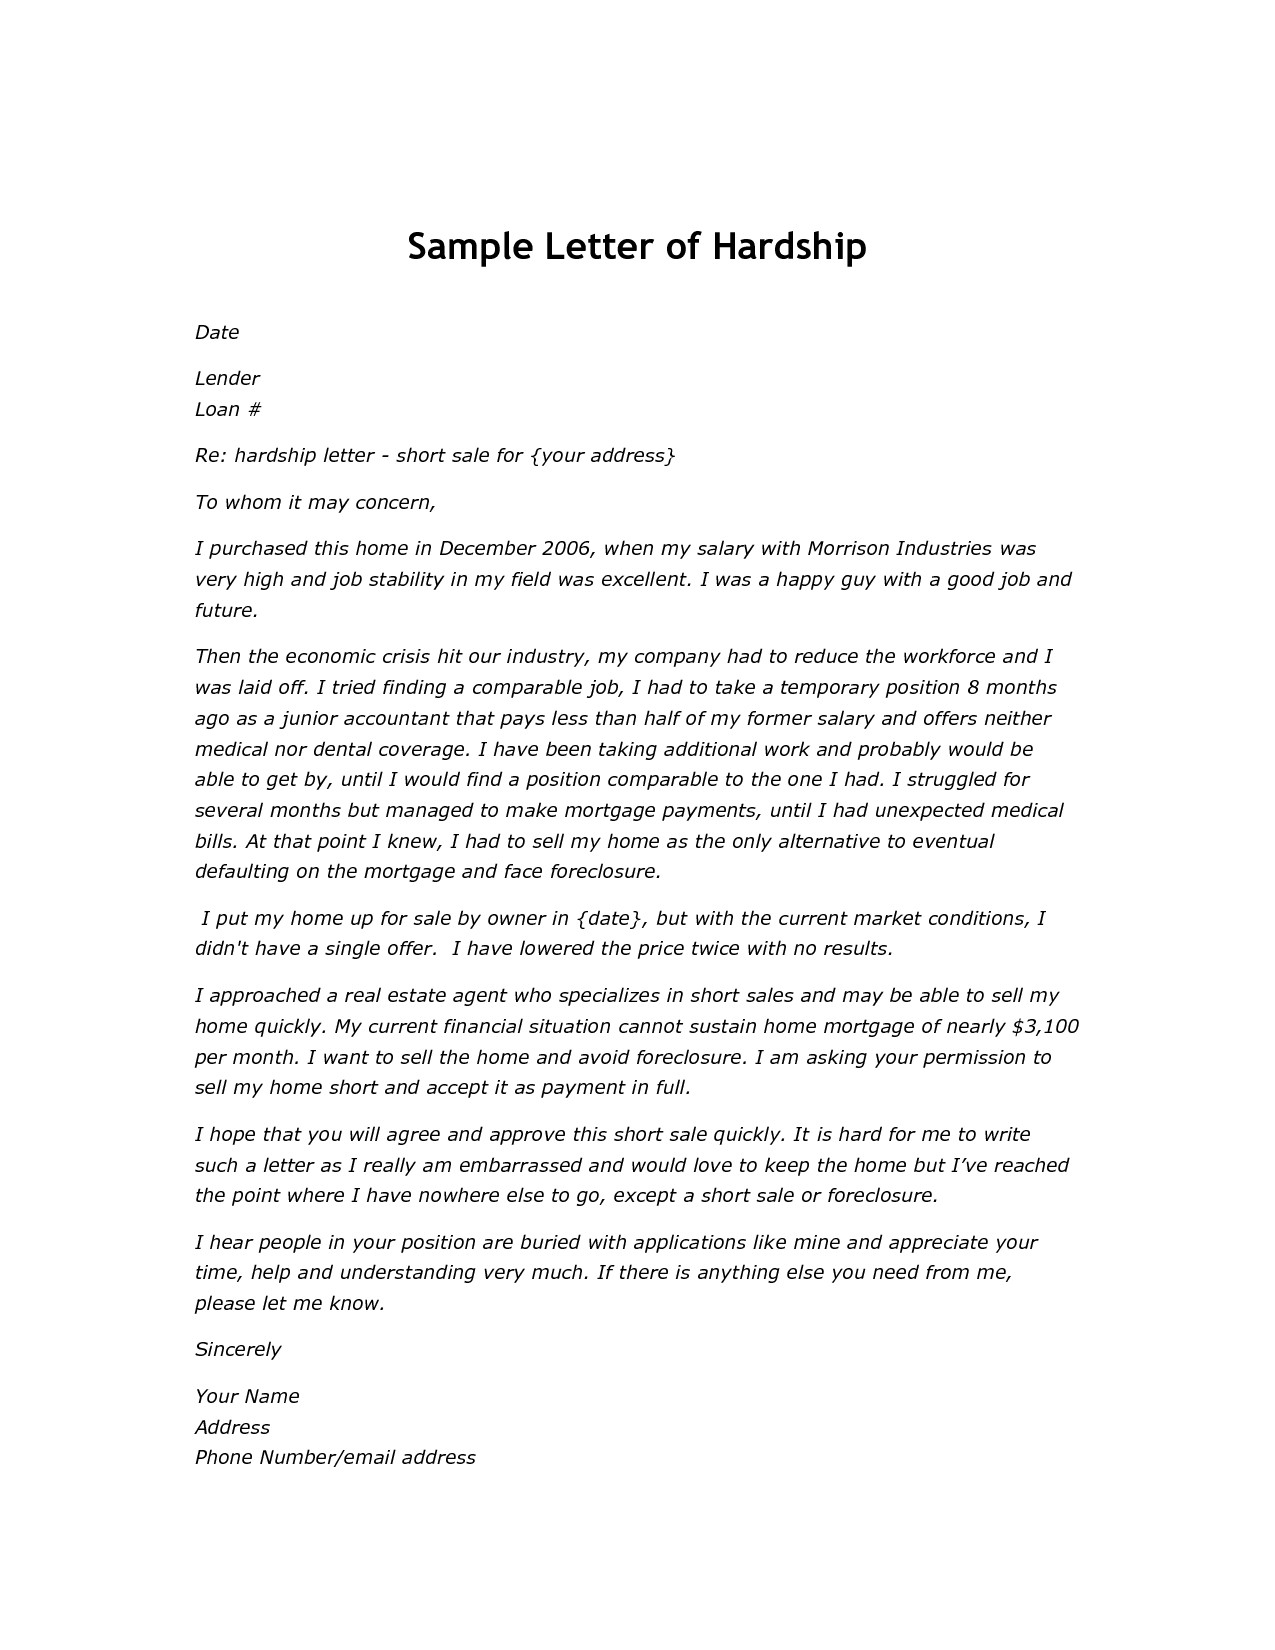 Mortgage Hardship Letter Template - How to Write A Hardship Letter for A Short Sale Letter